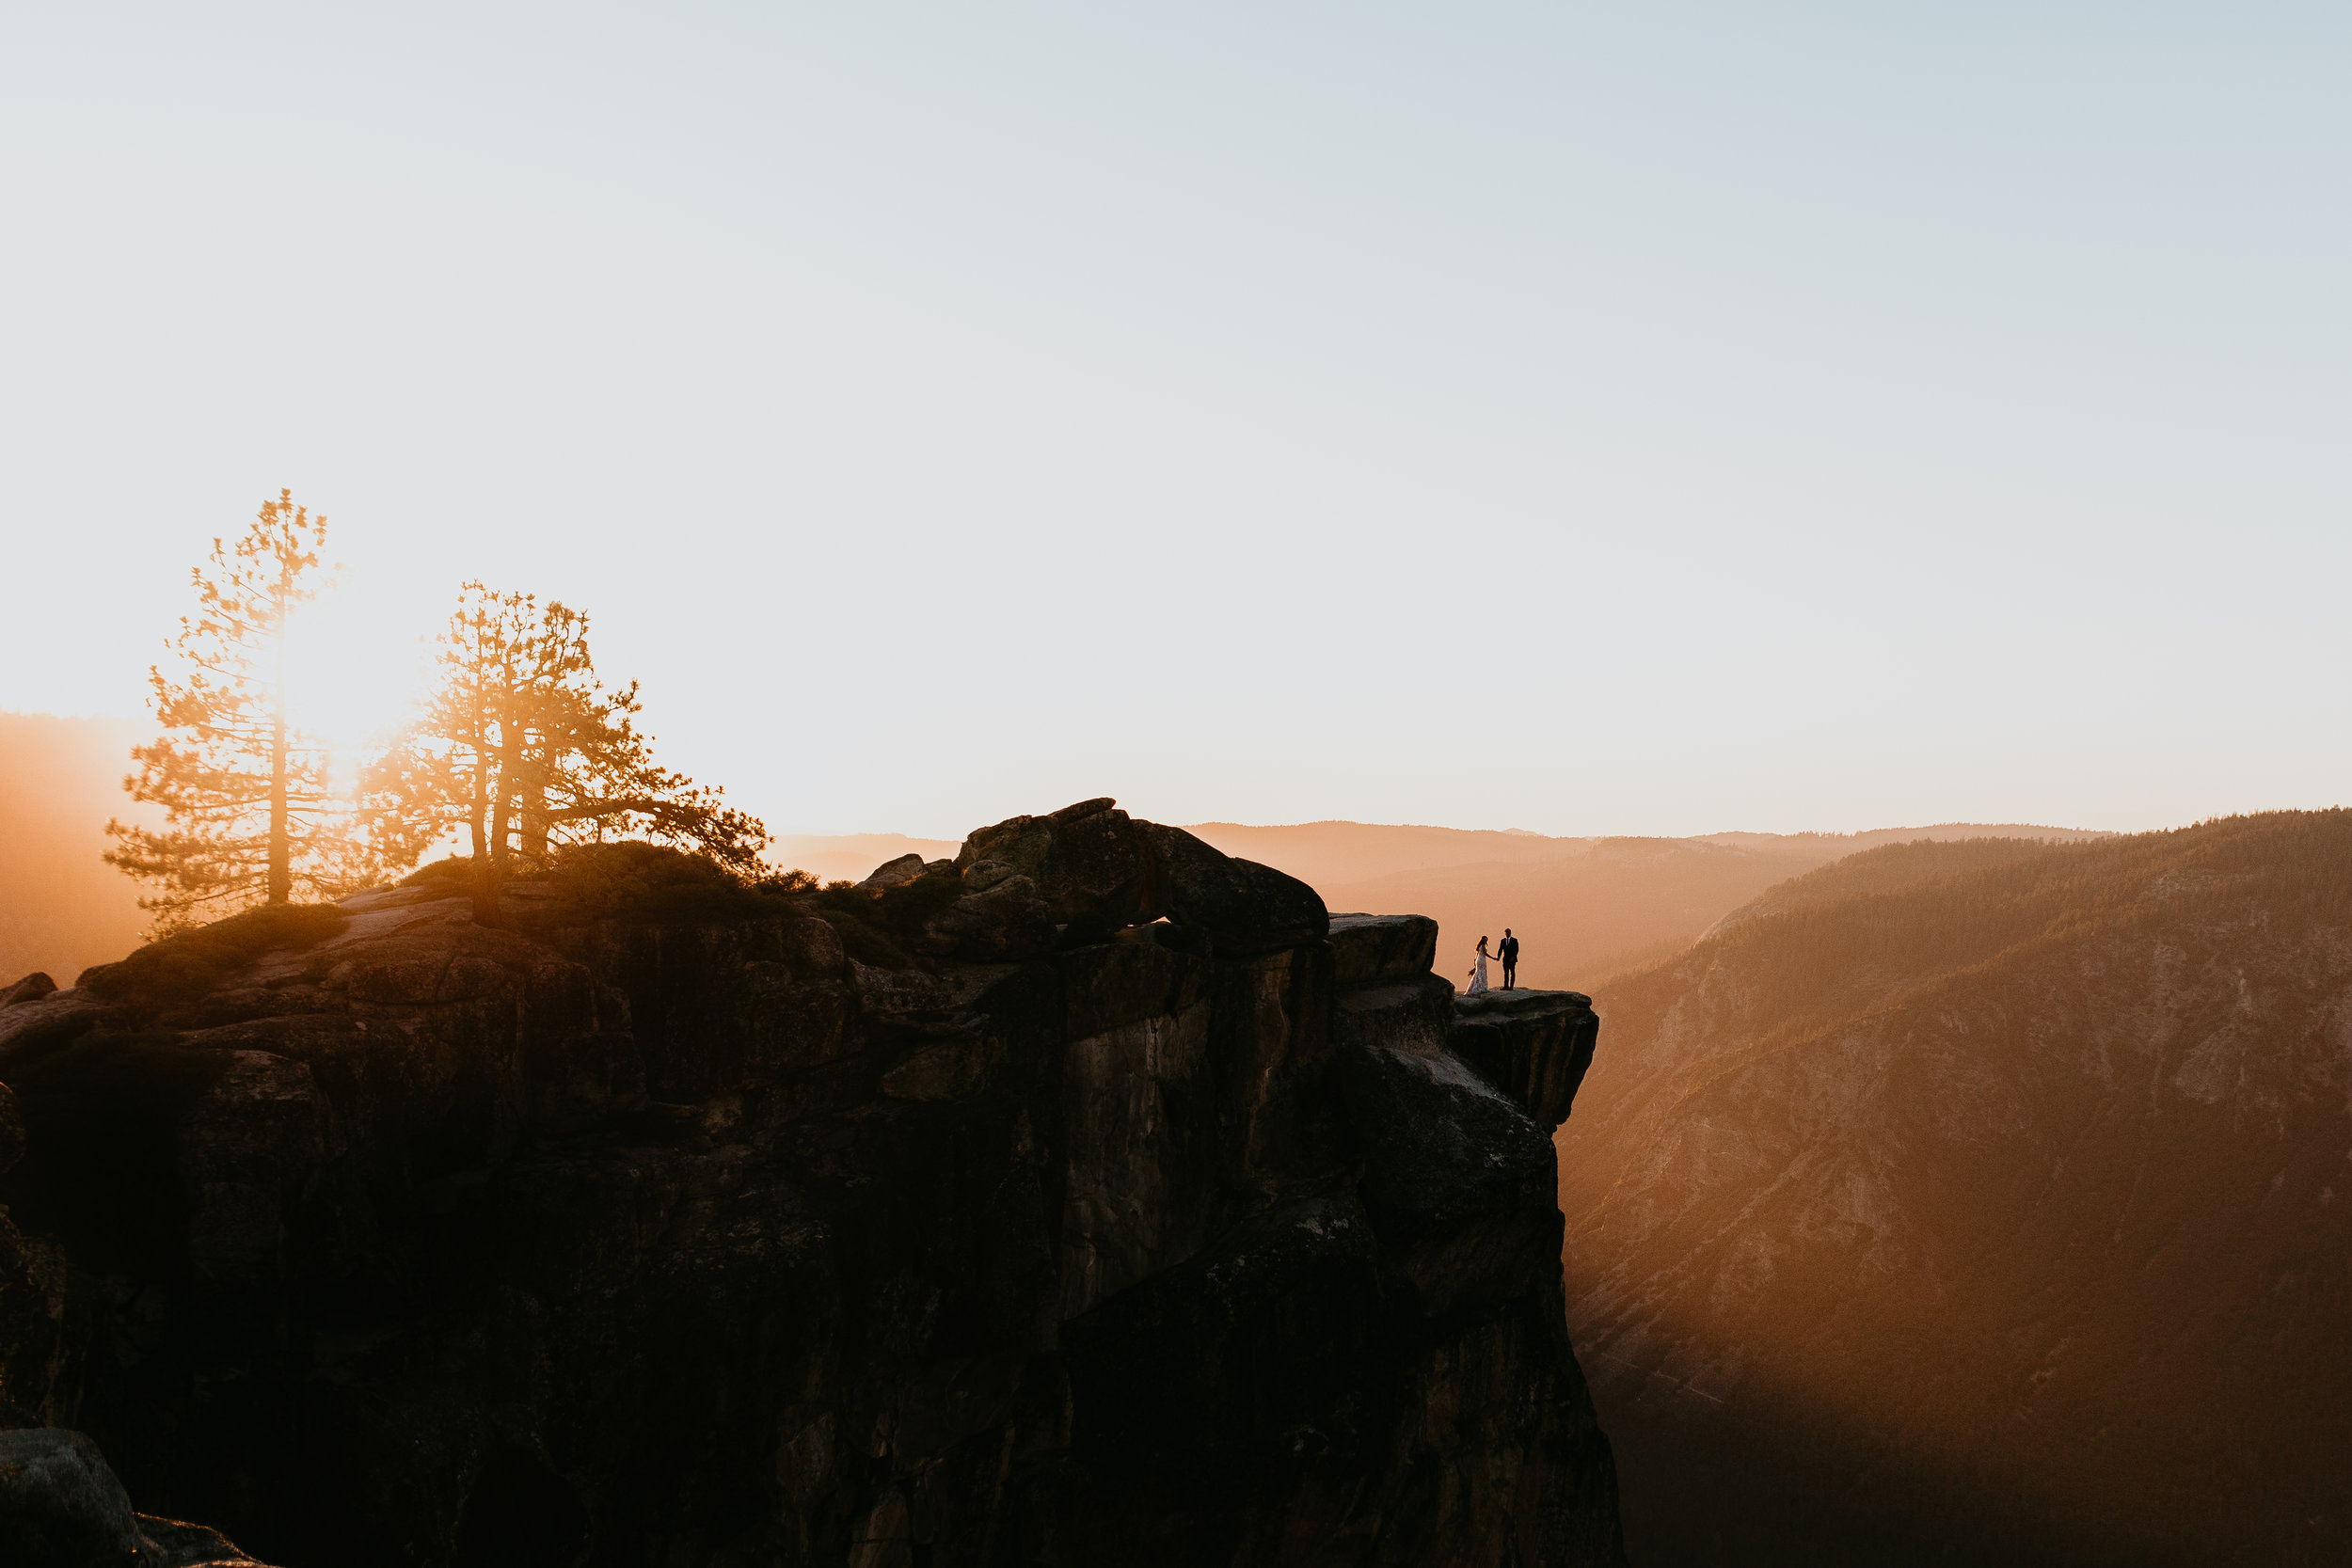 nicole-daacke-photography-intimate-elopement-wedding-yosemite-national-park-california-taft-point-sunset-photos-yosemite-valley-tunnel-view-first-look-sunrise-golden-granite-hiking-adventure-wedding-adventurous-elopement-photographer-113.jpg